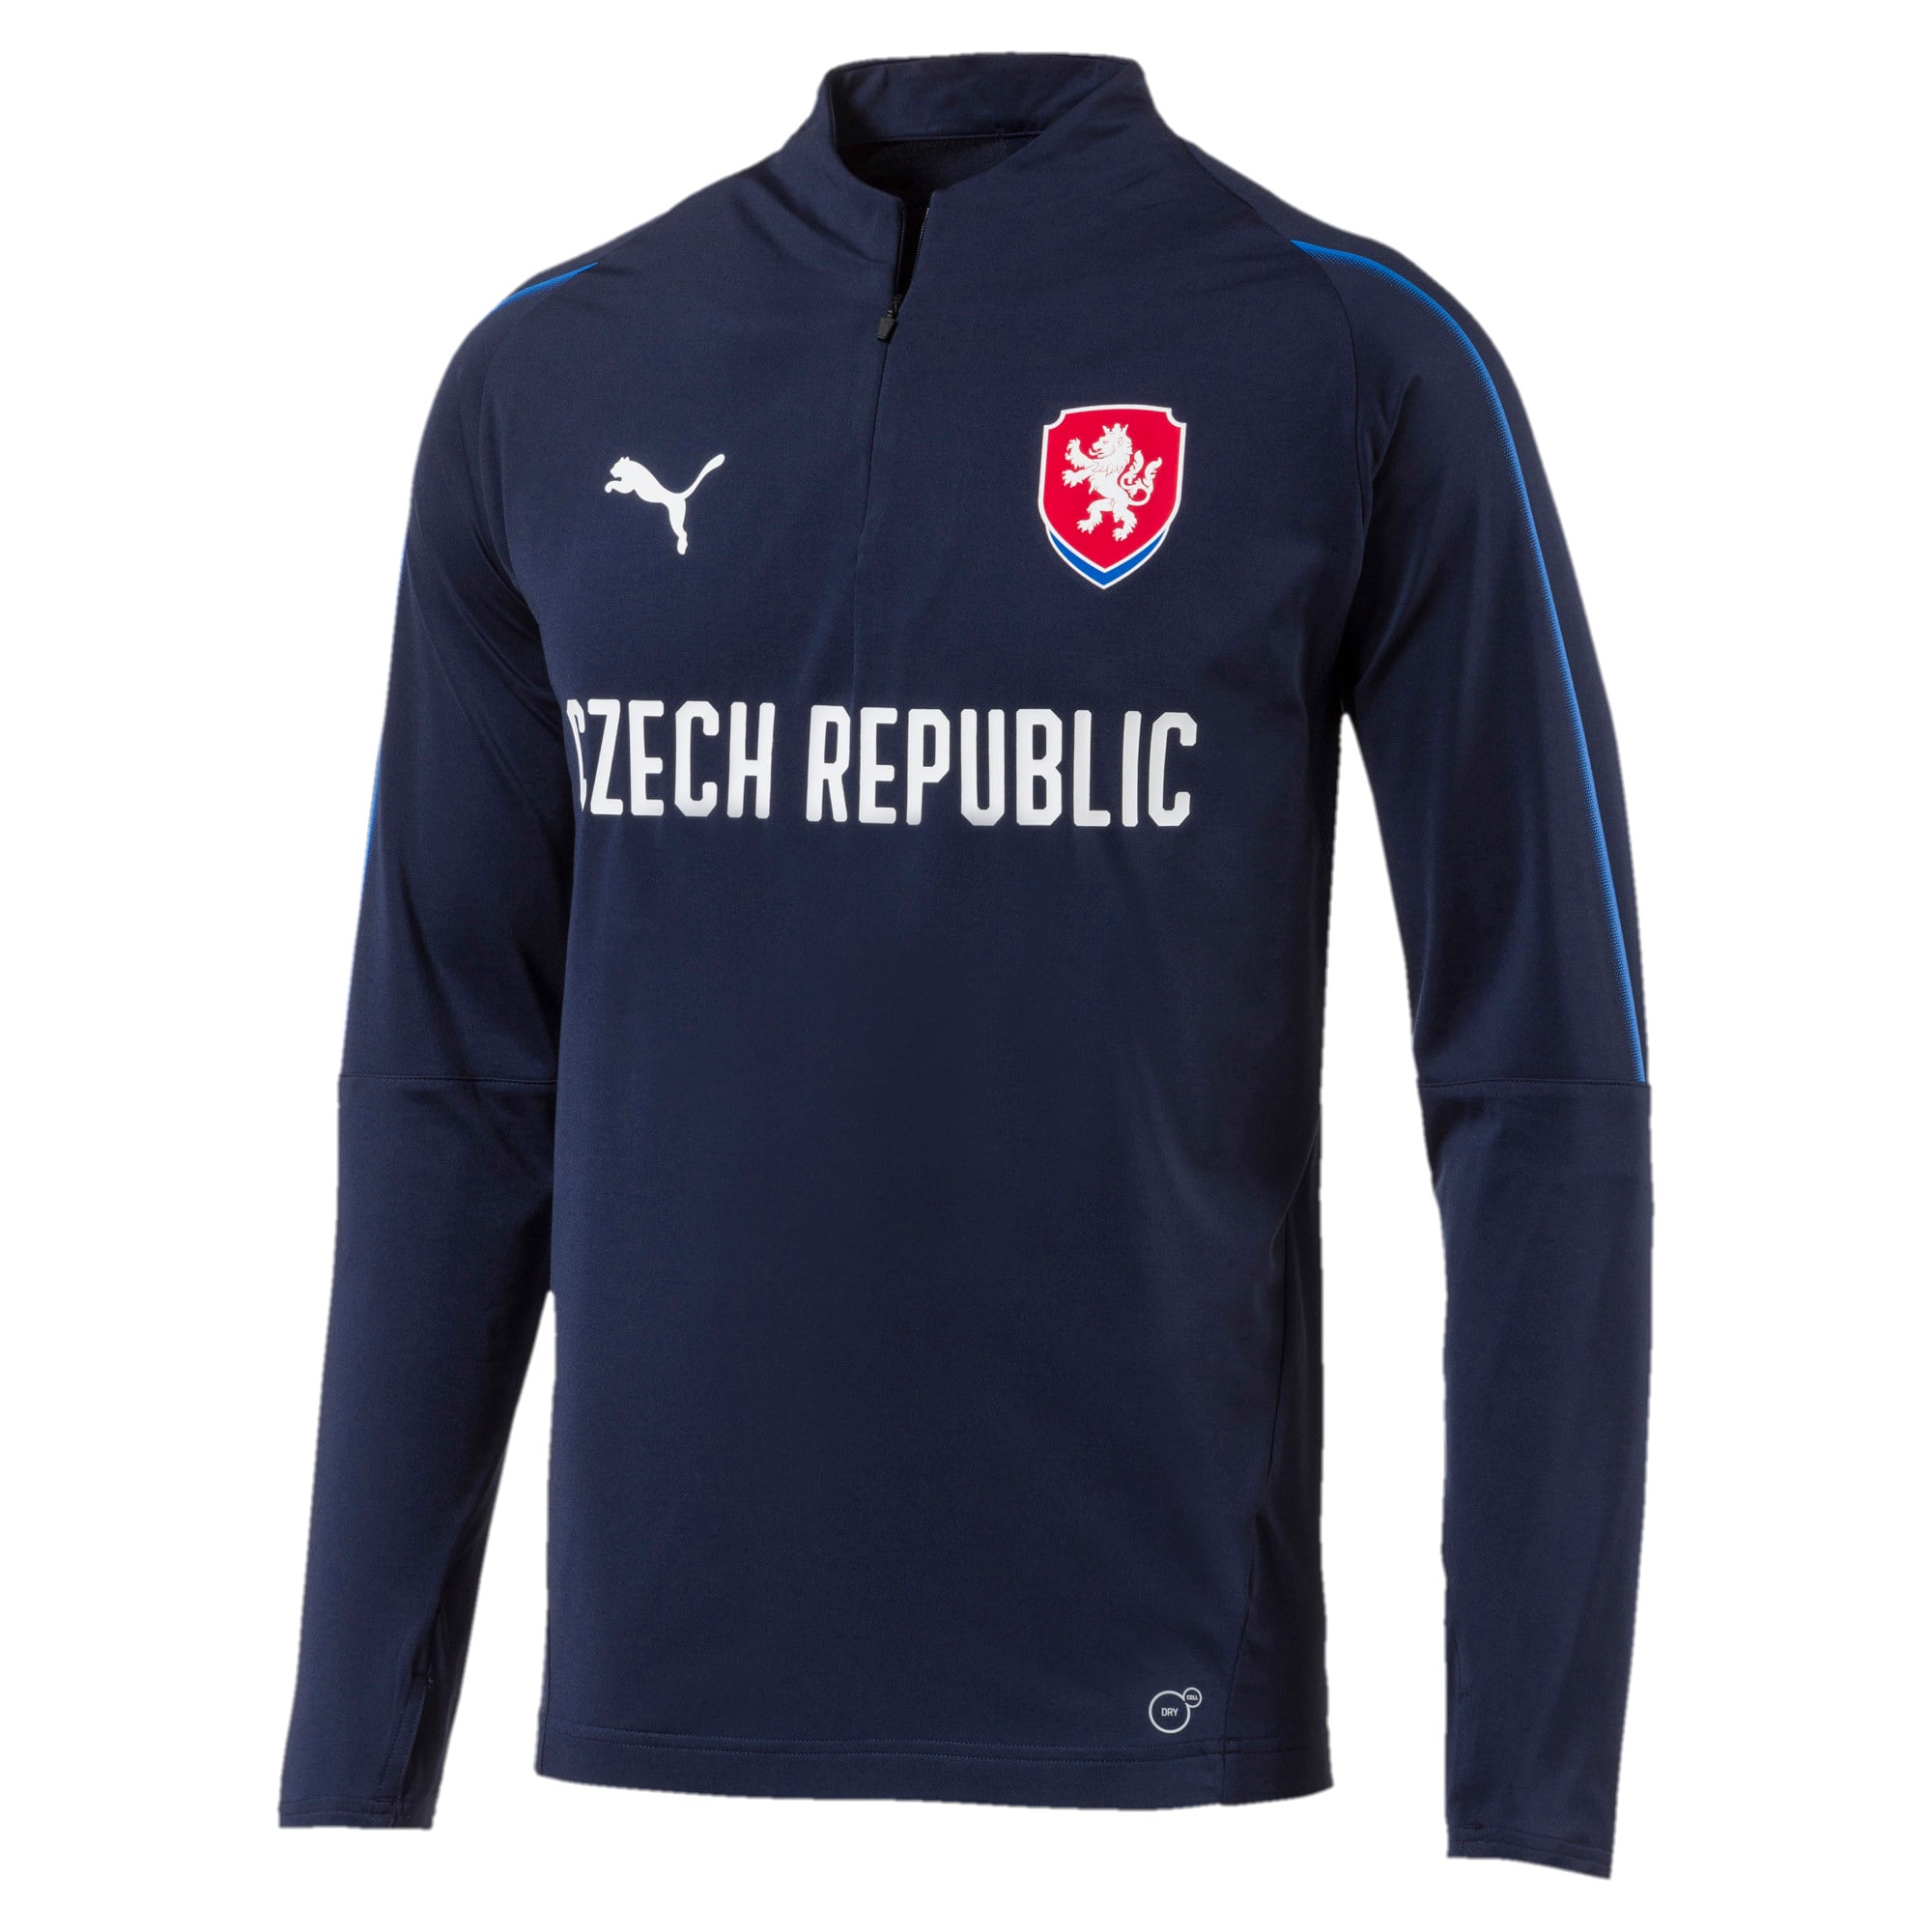 Thumbnail 1 of Czech Republic 1/4 Zip Training Top, Peacoat, medium